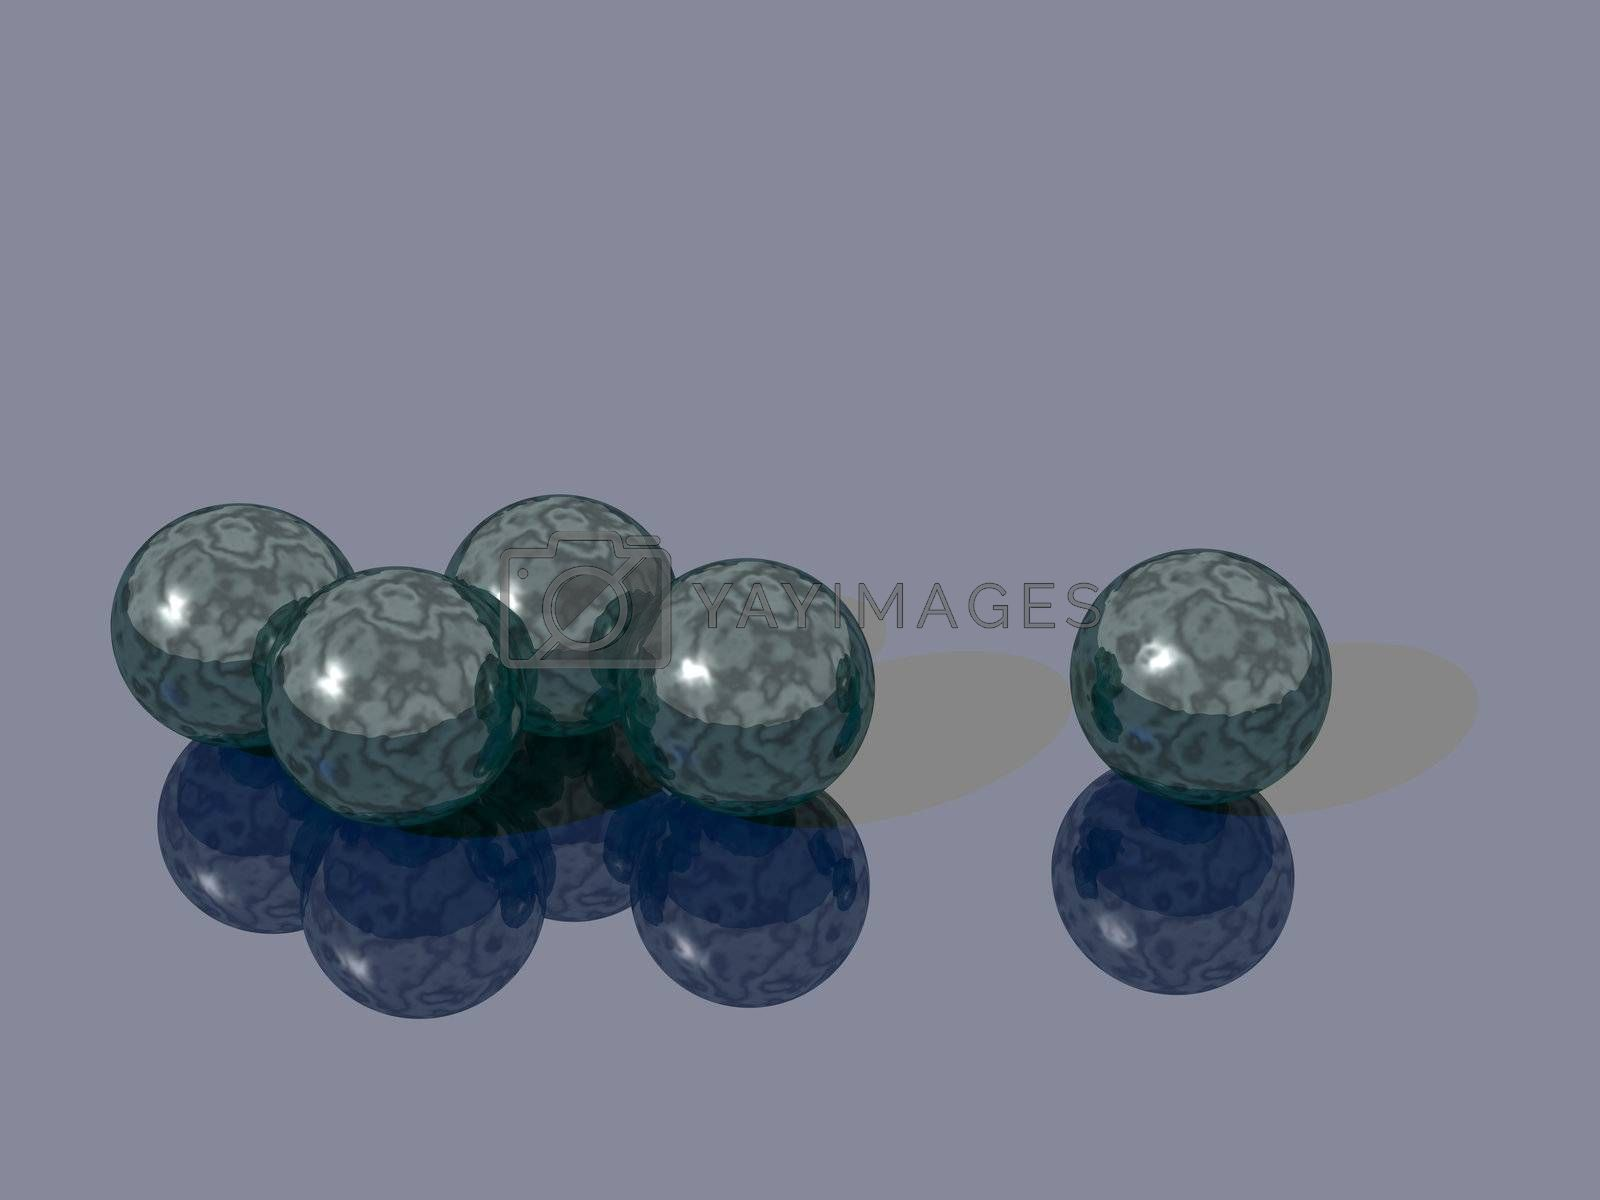 Royalty free image of glass sphere by drizzd